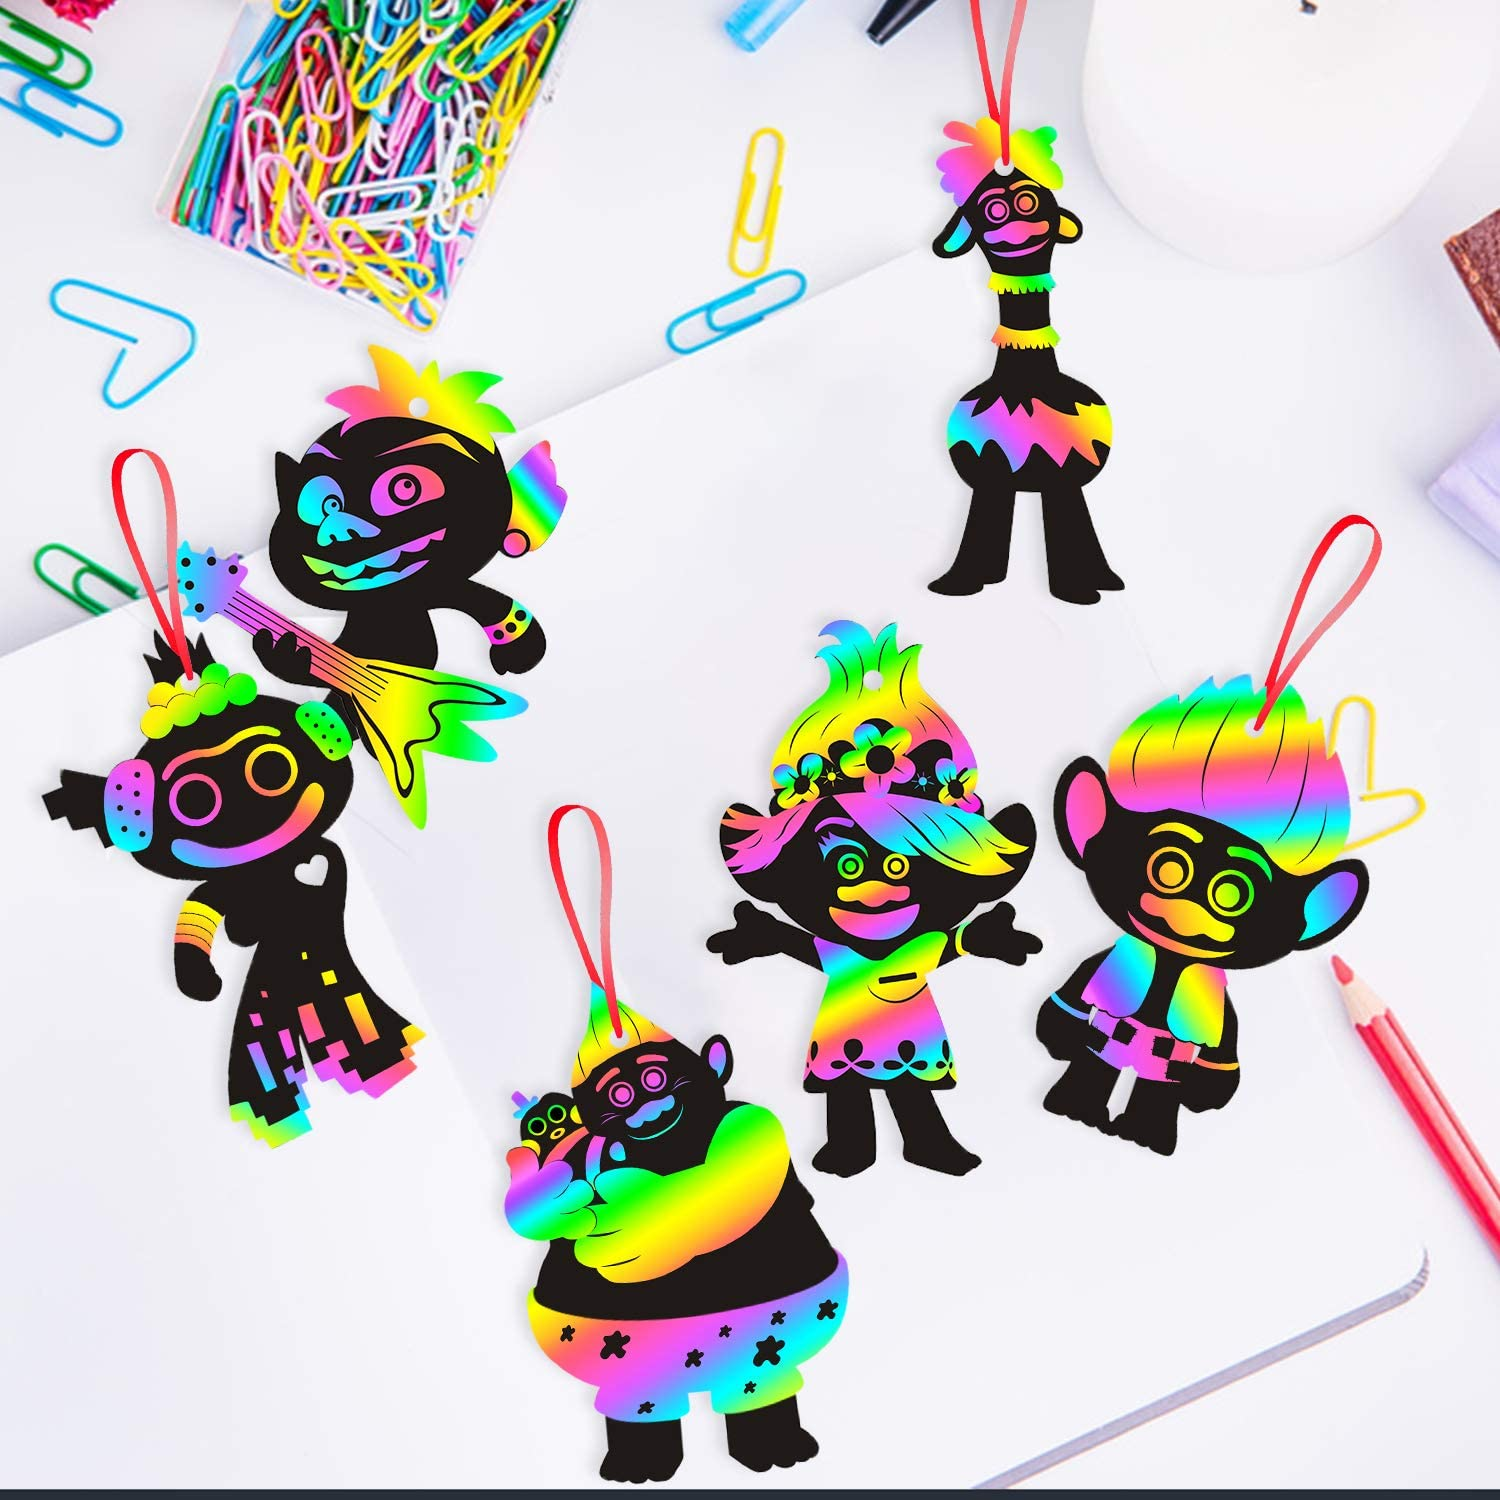 ANGOLIO 60Pack Trolls Scratch Art Set Theme Crafts Kit Rainbow Magic Scratch Paper Art Black Scratch Off Supplies Kits Rainbow Holographic Mini Notes Party Favor Birthday Game for Girls Boys